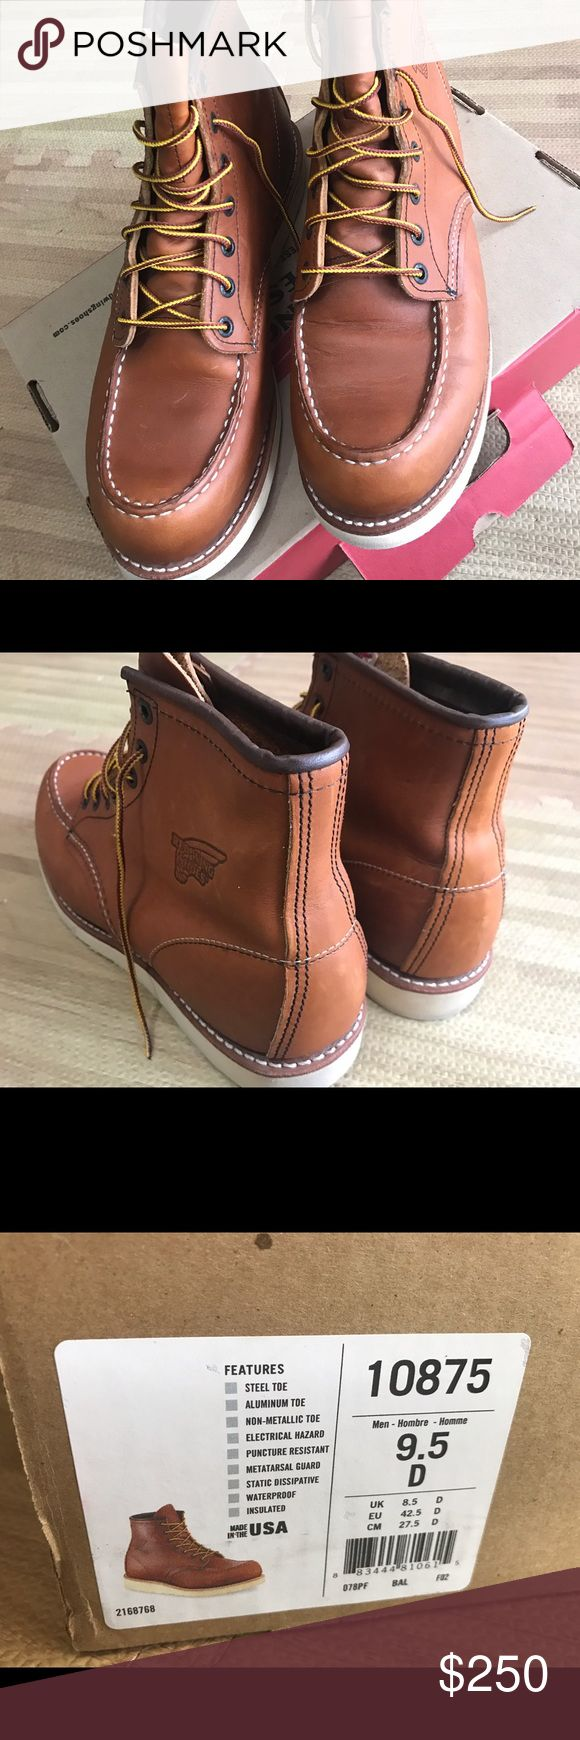 Red wing 10875 toe boots sz 9.5 D Red wing 10875 sz 9.5 D mens excellent condition come with original box authentic 100% I bought from red wing store worn once  barely used like new Feel free ask me any questions Thank you. Red Wing Shoes Shoes Boots